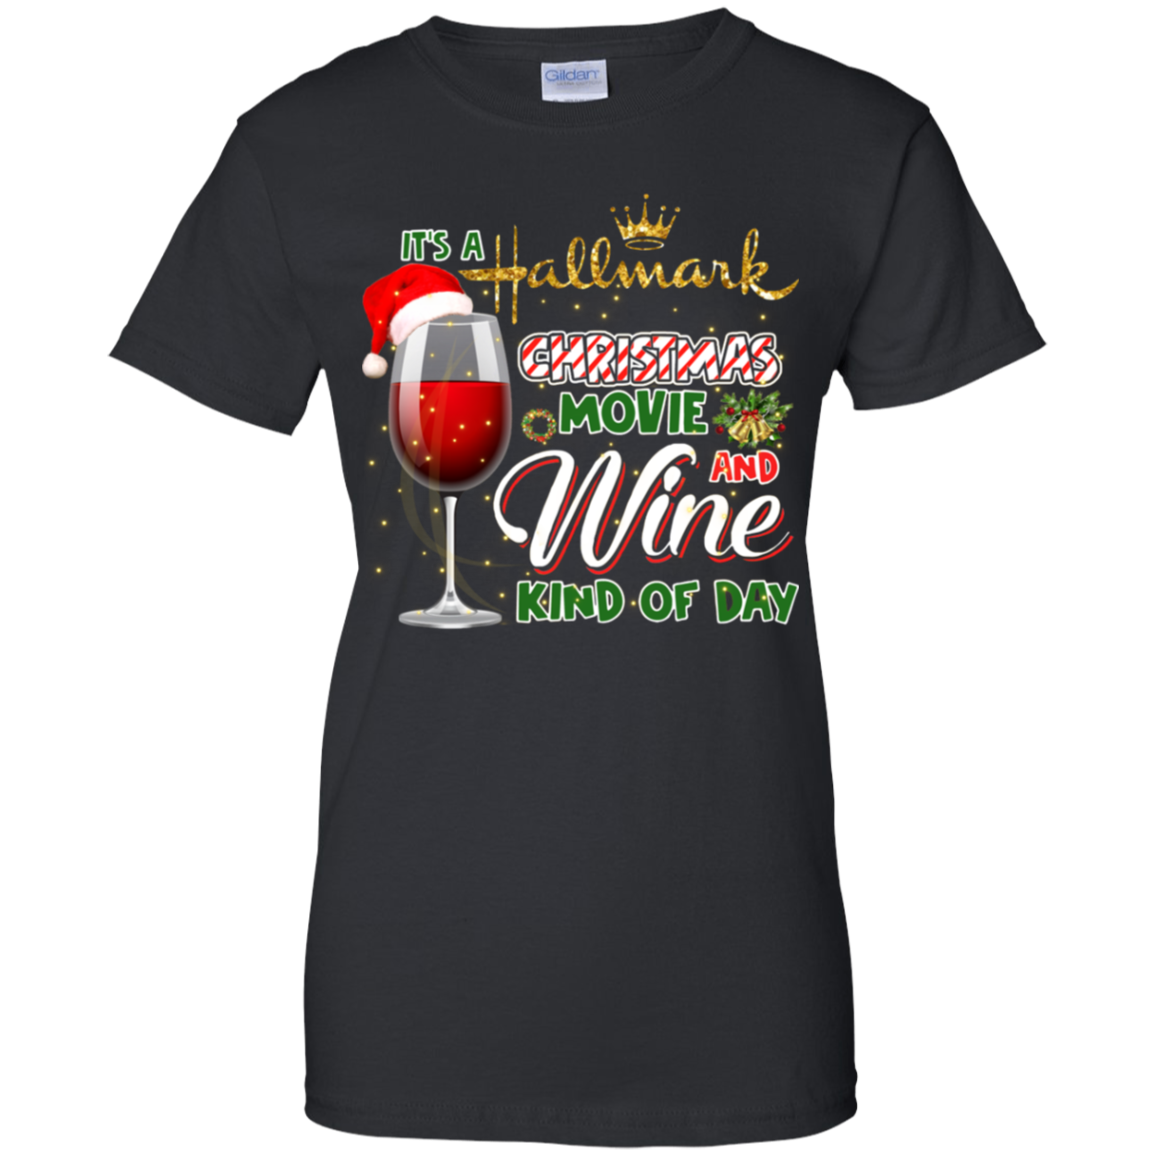 Chrismast_wine_aw It's A Hallmark Christmas Movie Wine Kind Of Day Shirt Black Cotton Ladies S-3XL